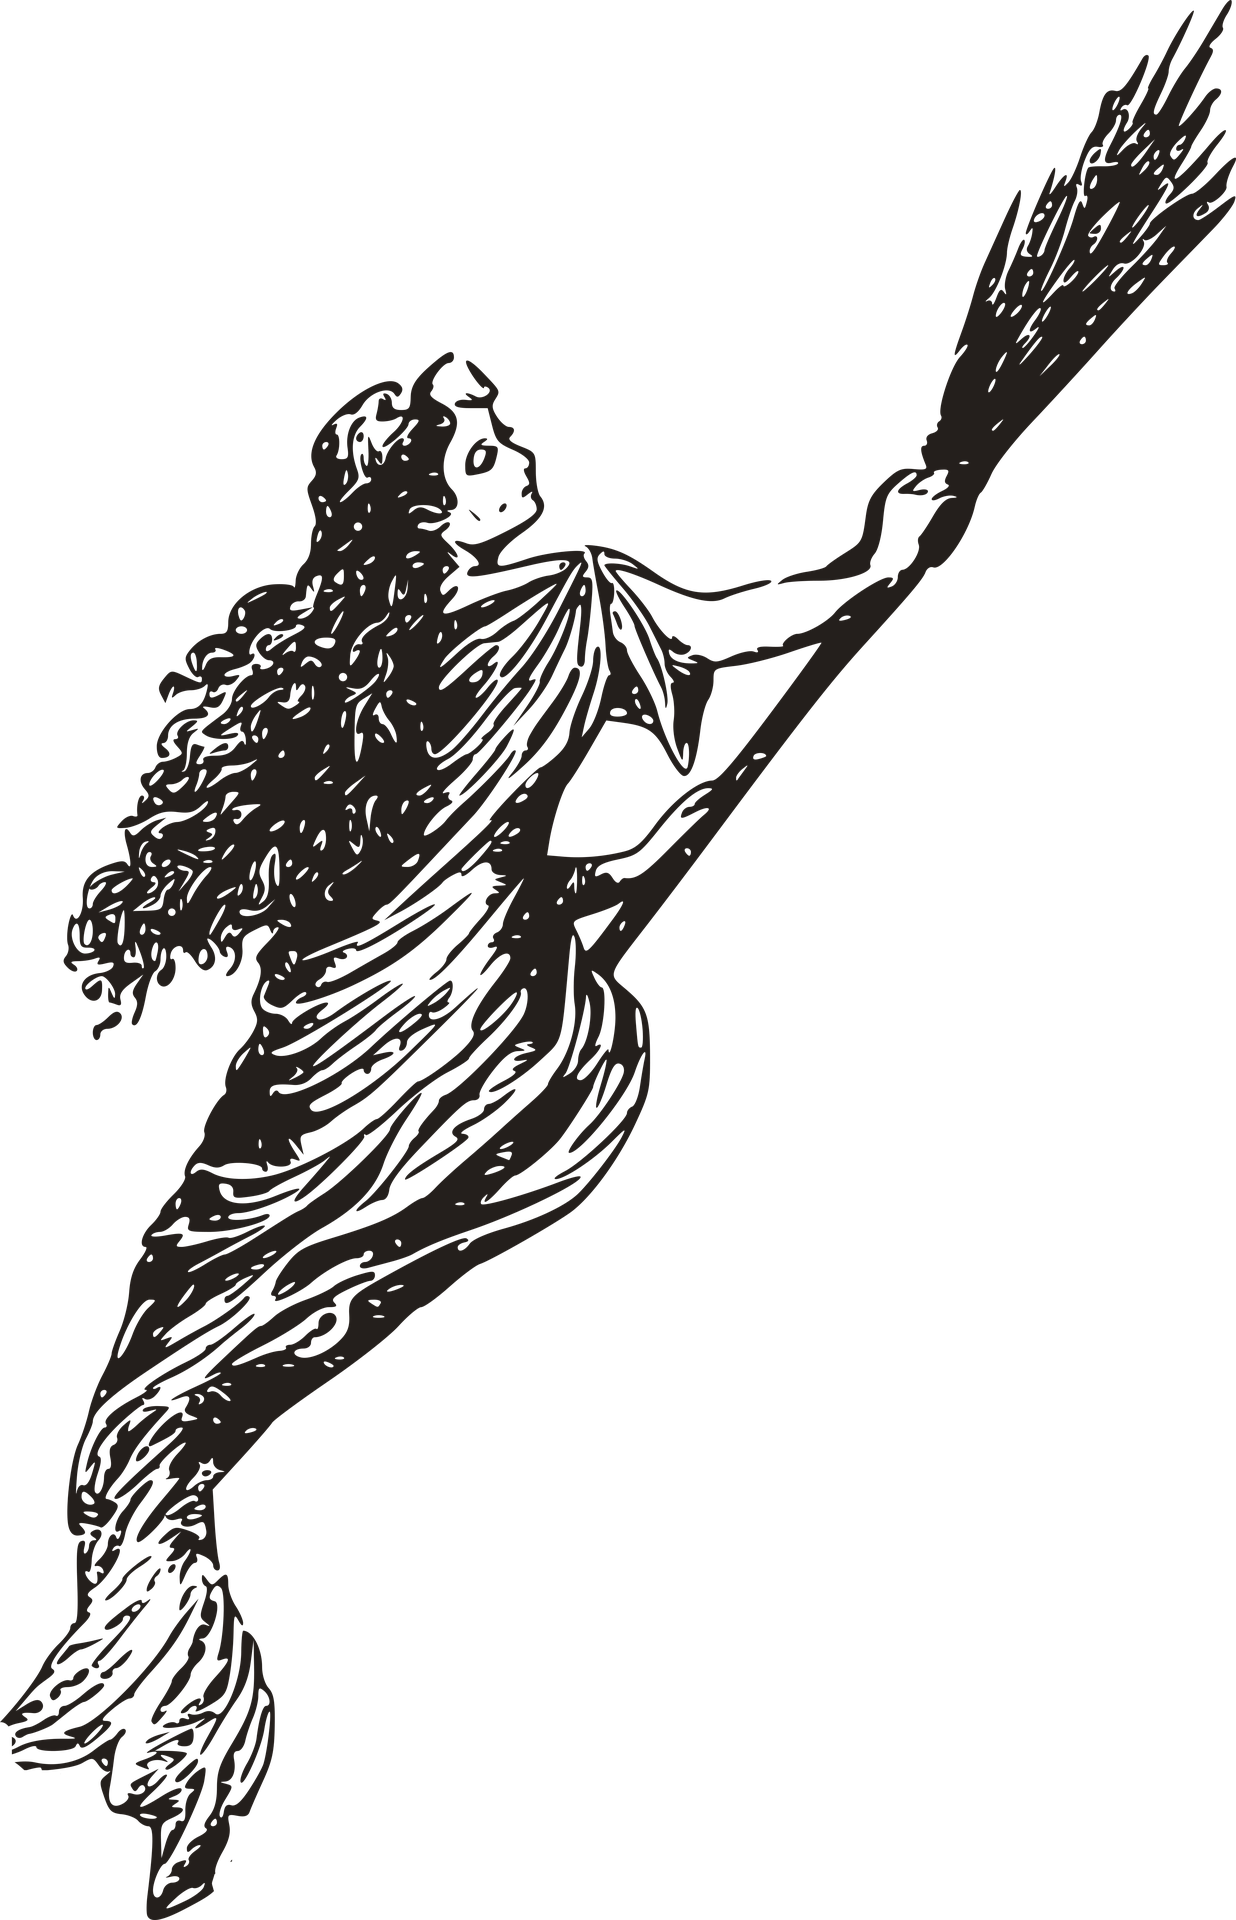 Drawing witch hag. North carolina witches trials